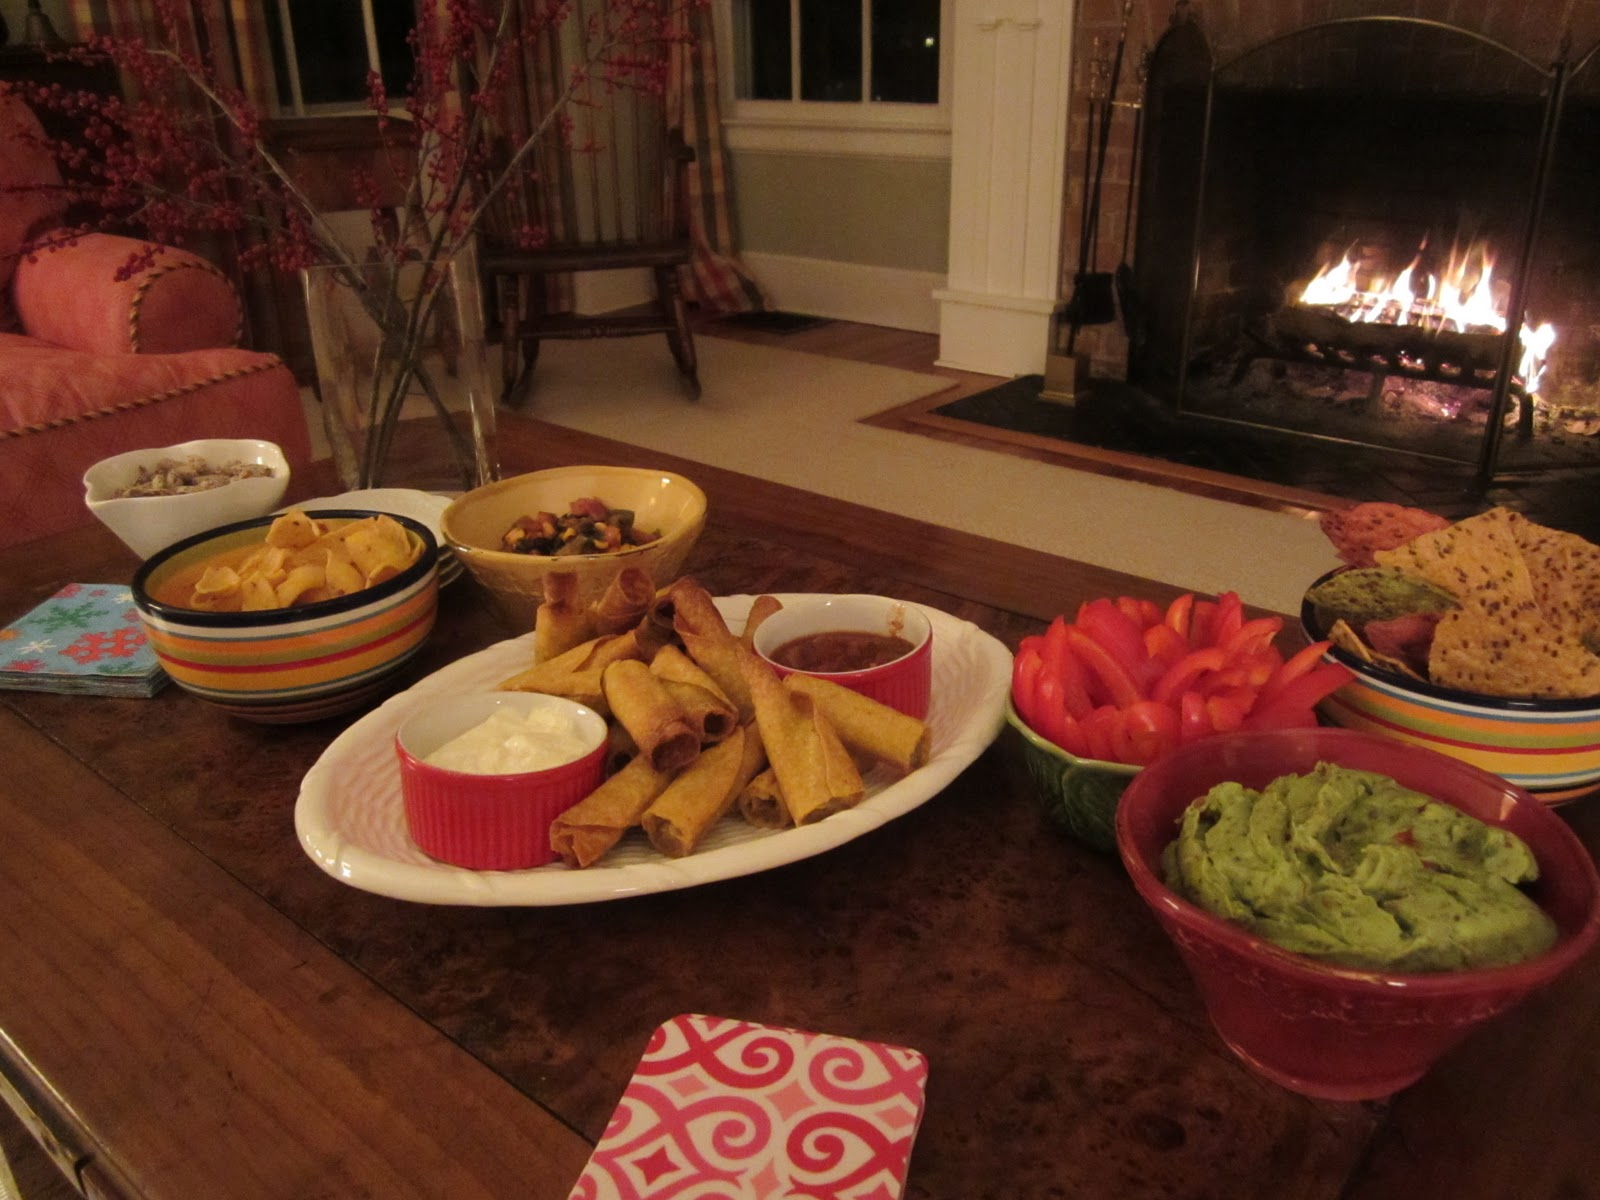 Dinner table with mexican food - The Only Things That Need To Happen Right Before The Guests Arrive Light A Fire Turn On Some Music And Put The Casual Appetizers Out